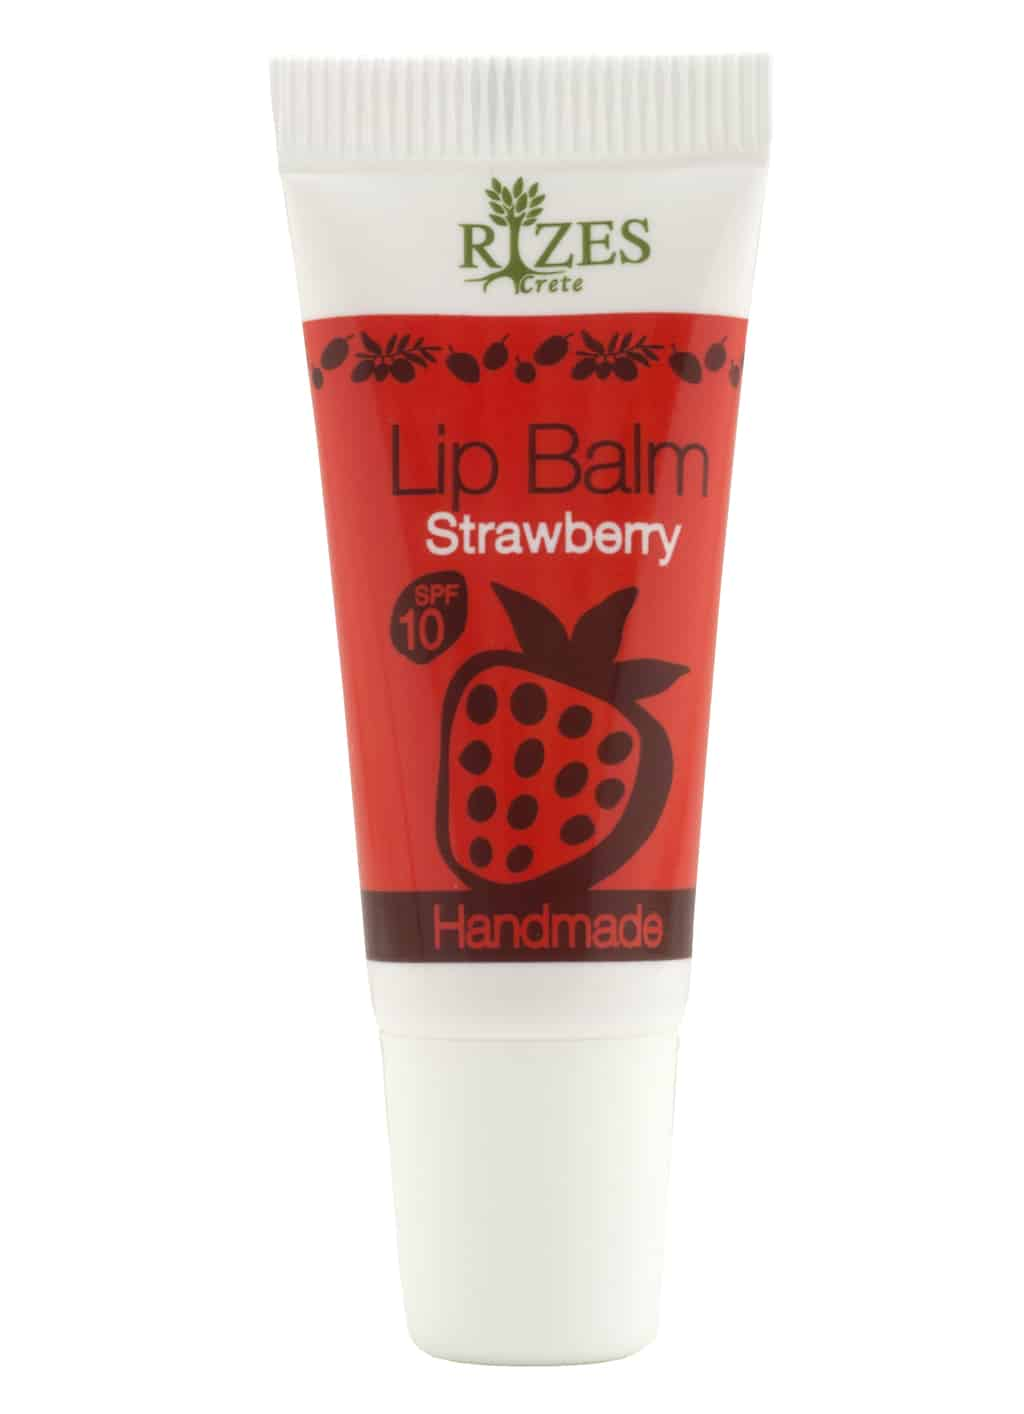 Lip balm with SPF strawberry, without Vaseline